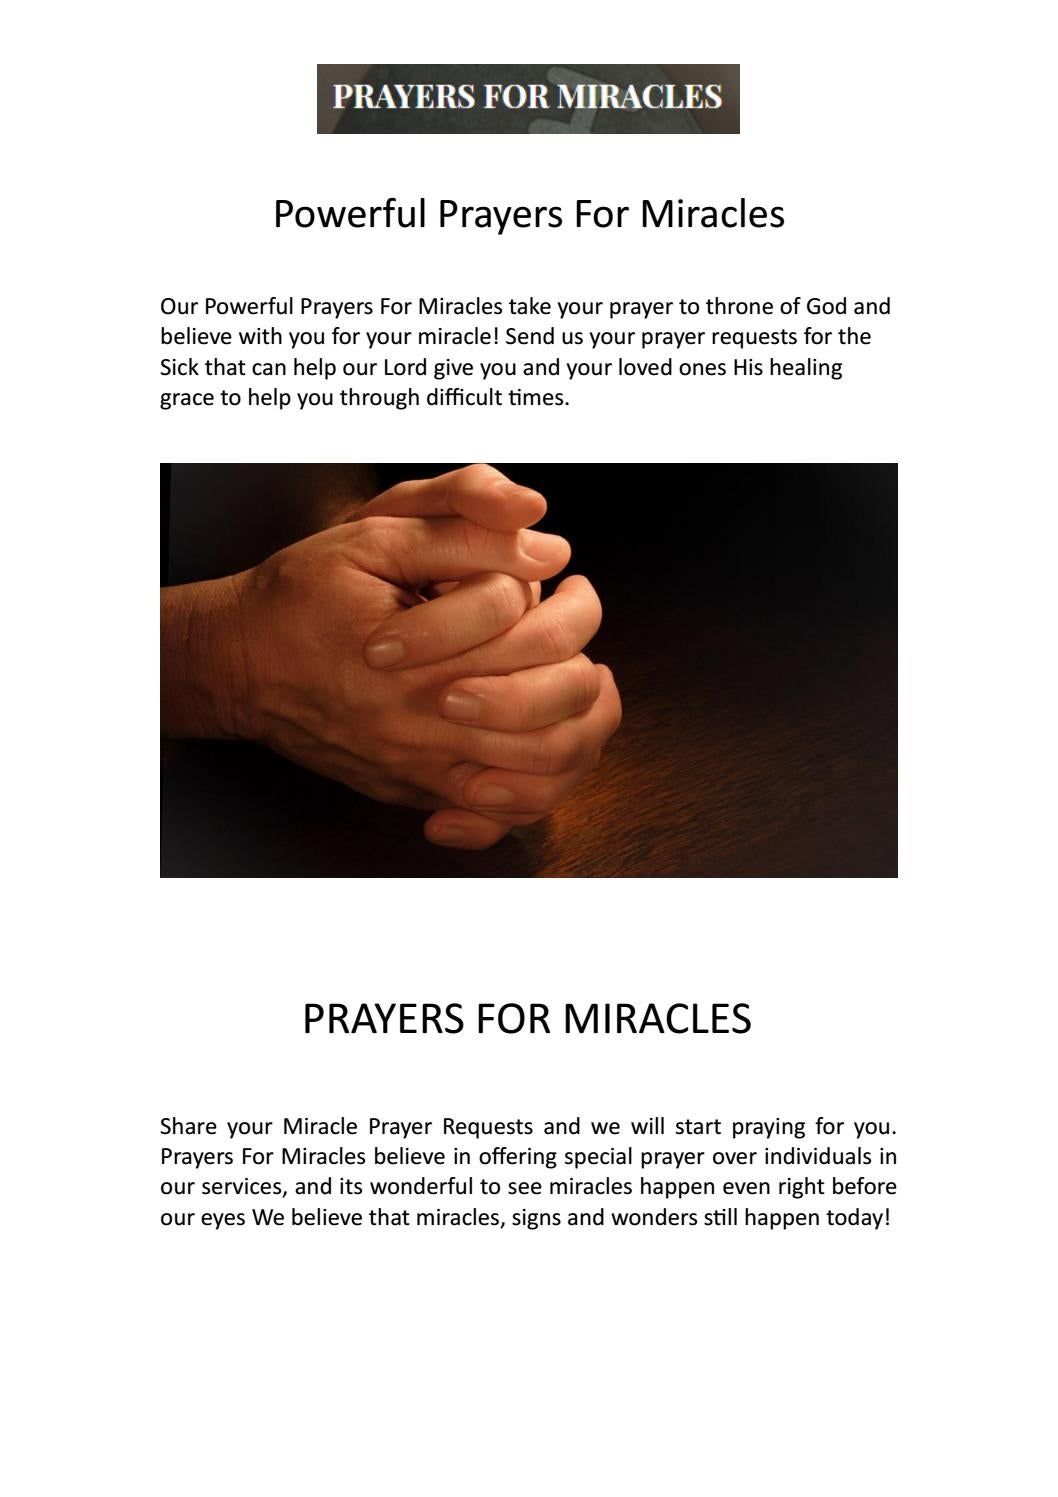 Belive in Powerful Prayers for Miracles by Prayers for Miracles - issuu